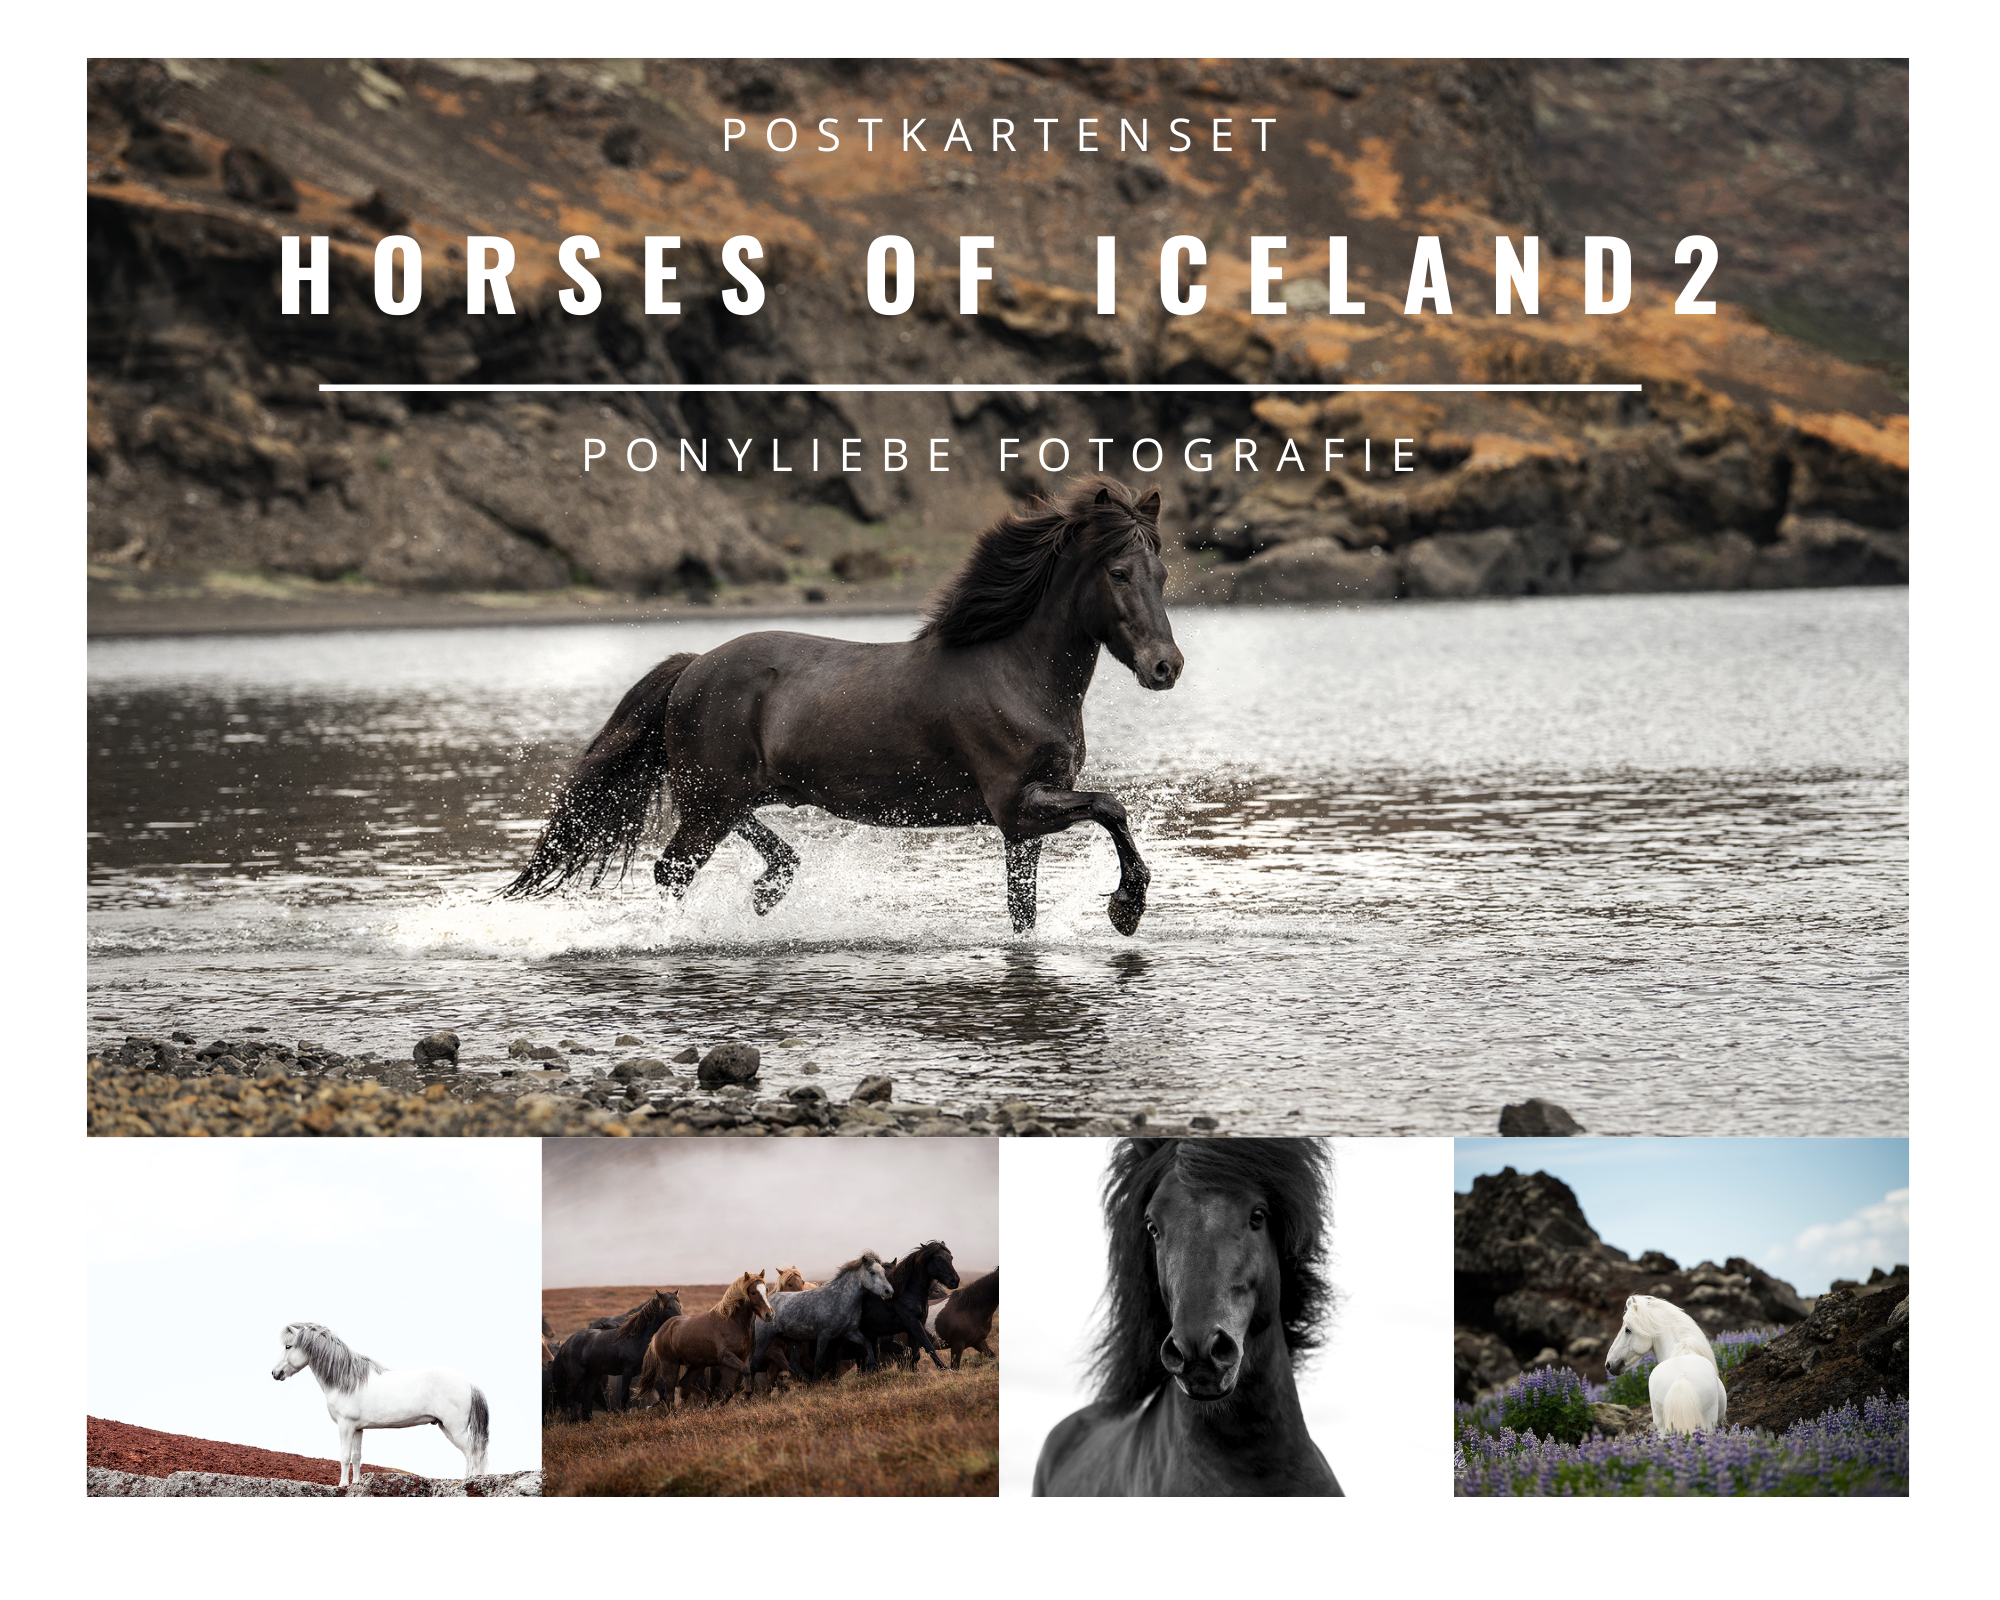 Postkarten Set- Horses of Iceland 2-0